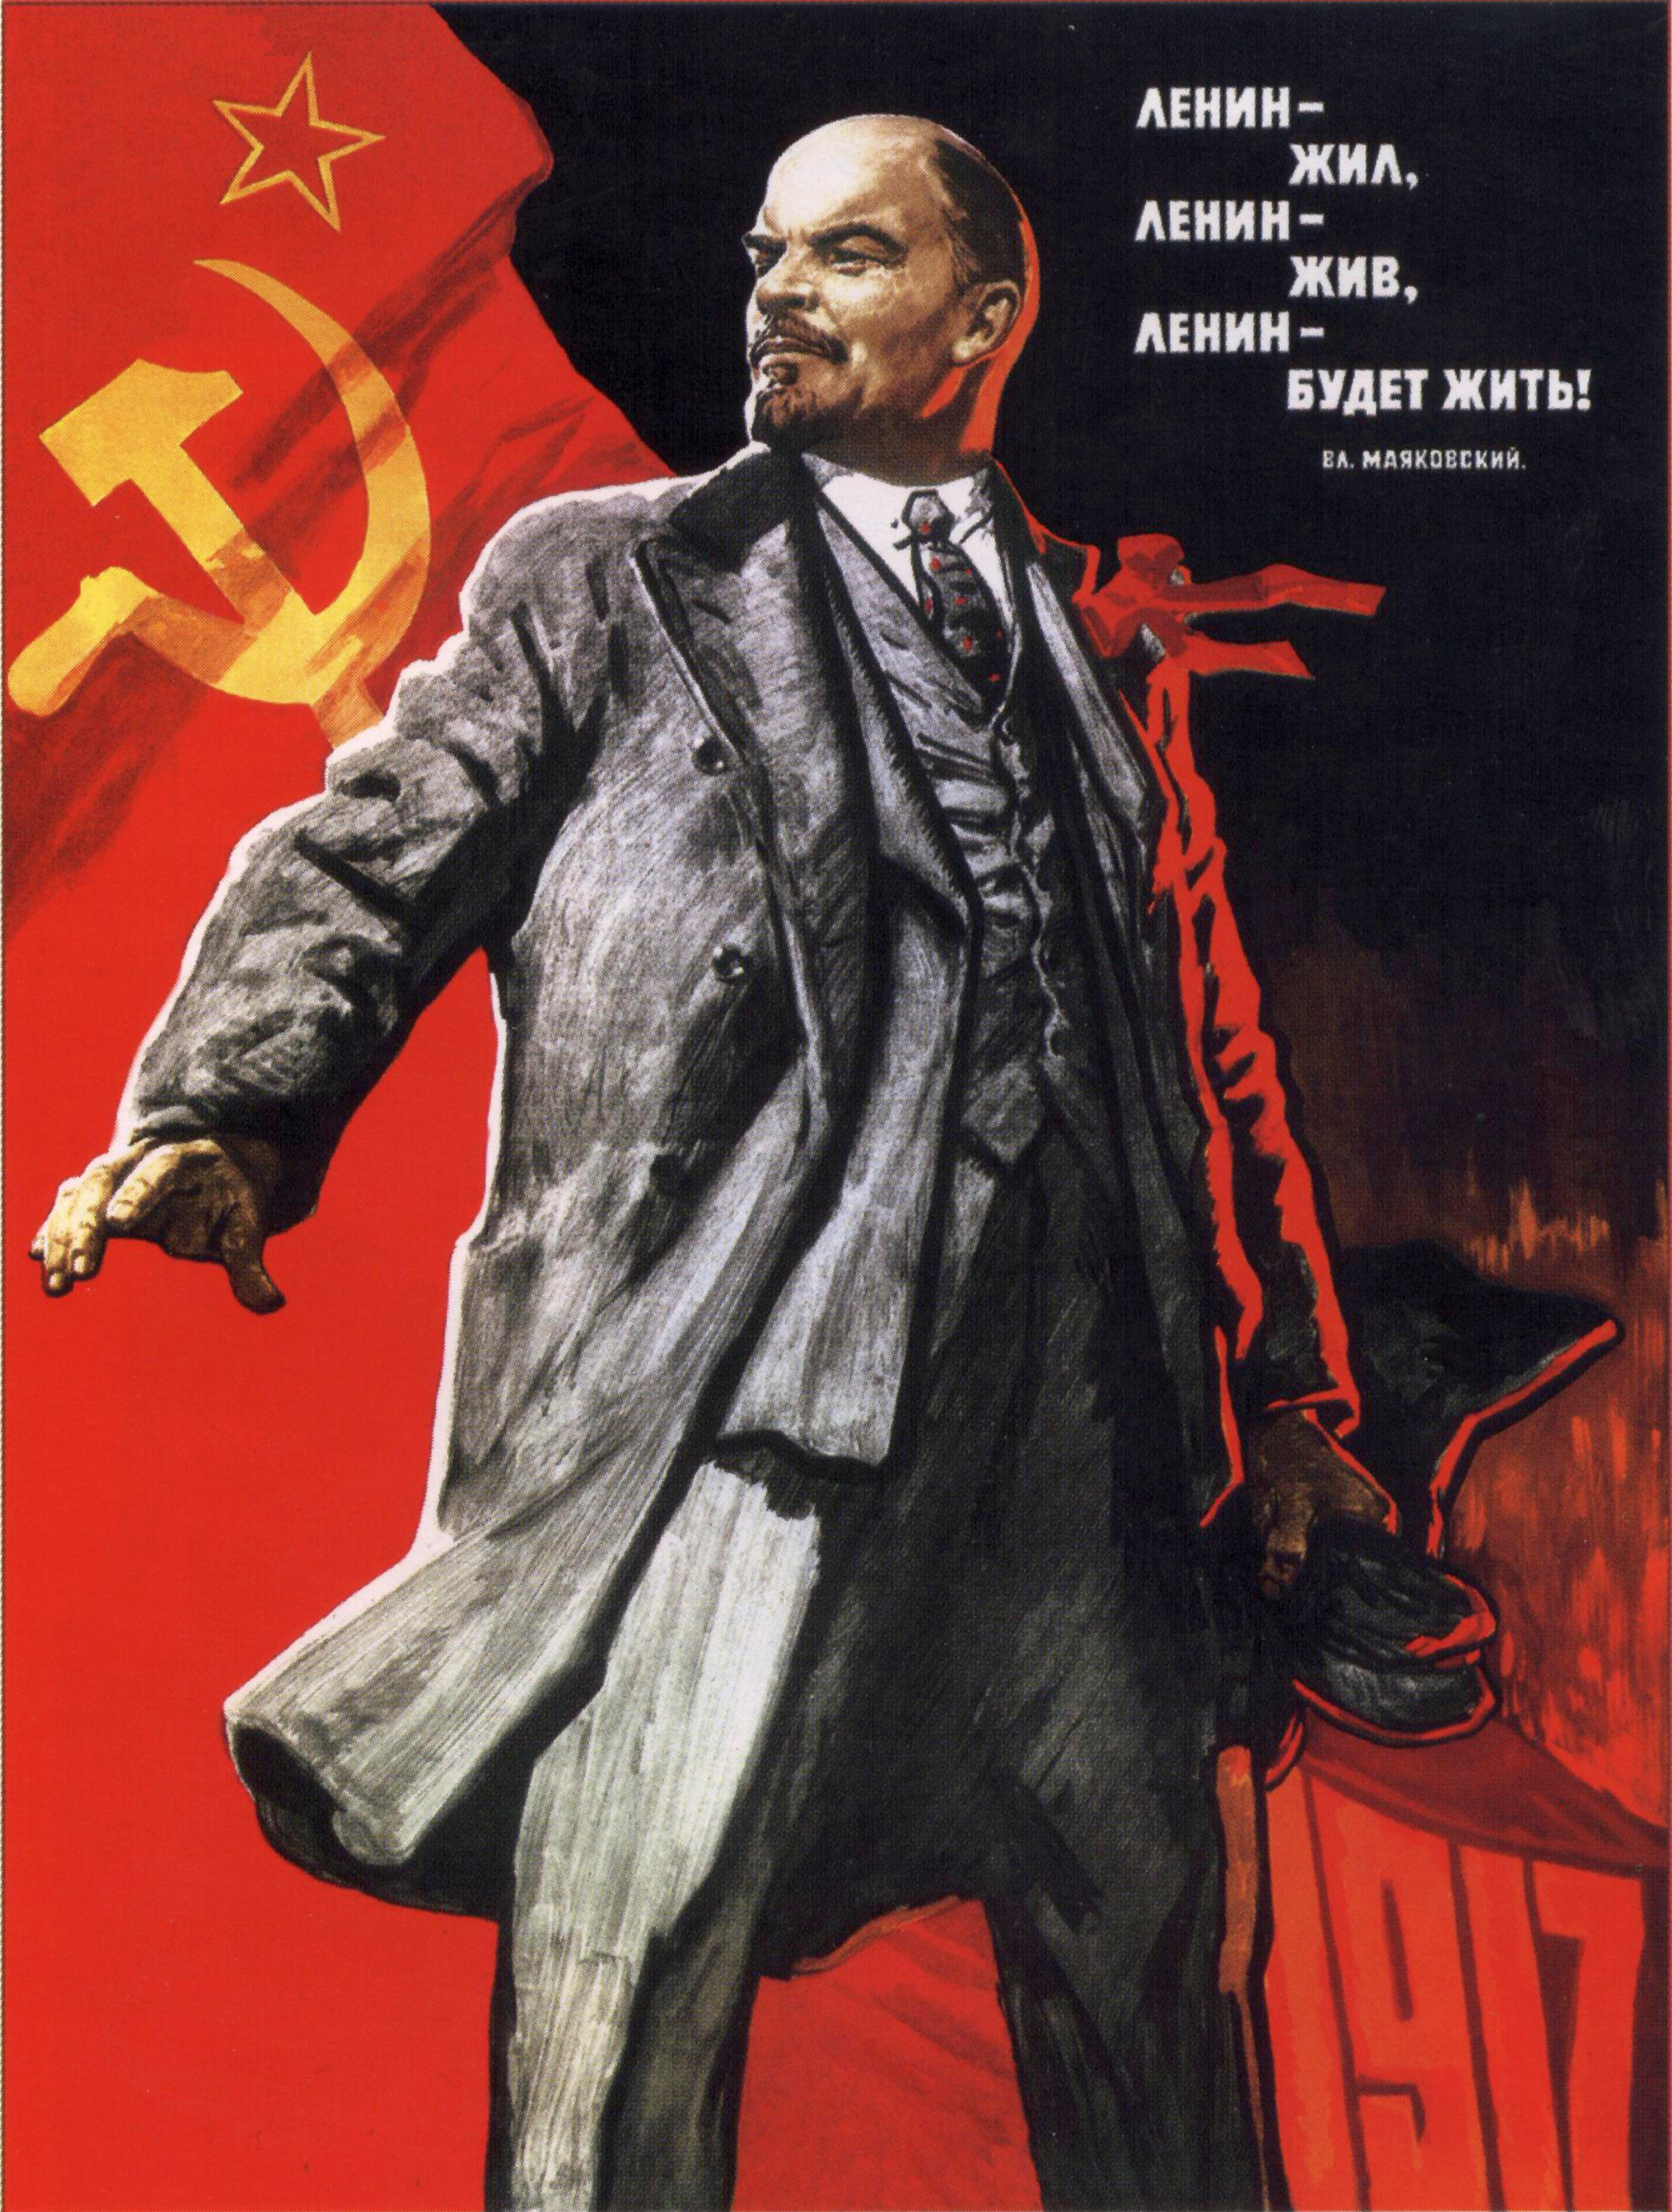 vladimir lenin essay the soviet union under stalin five year plans purges policies